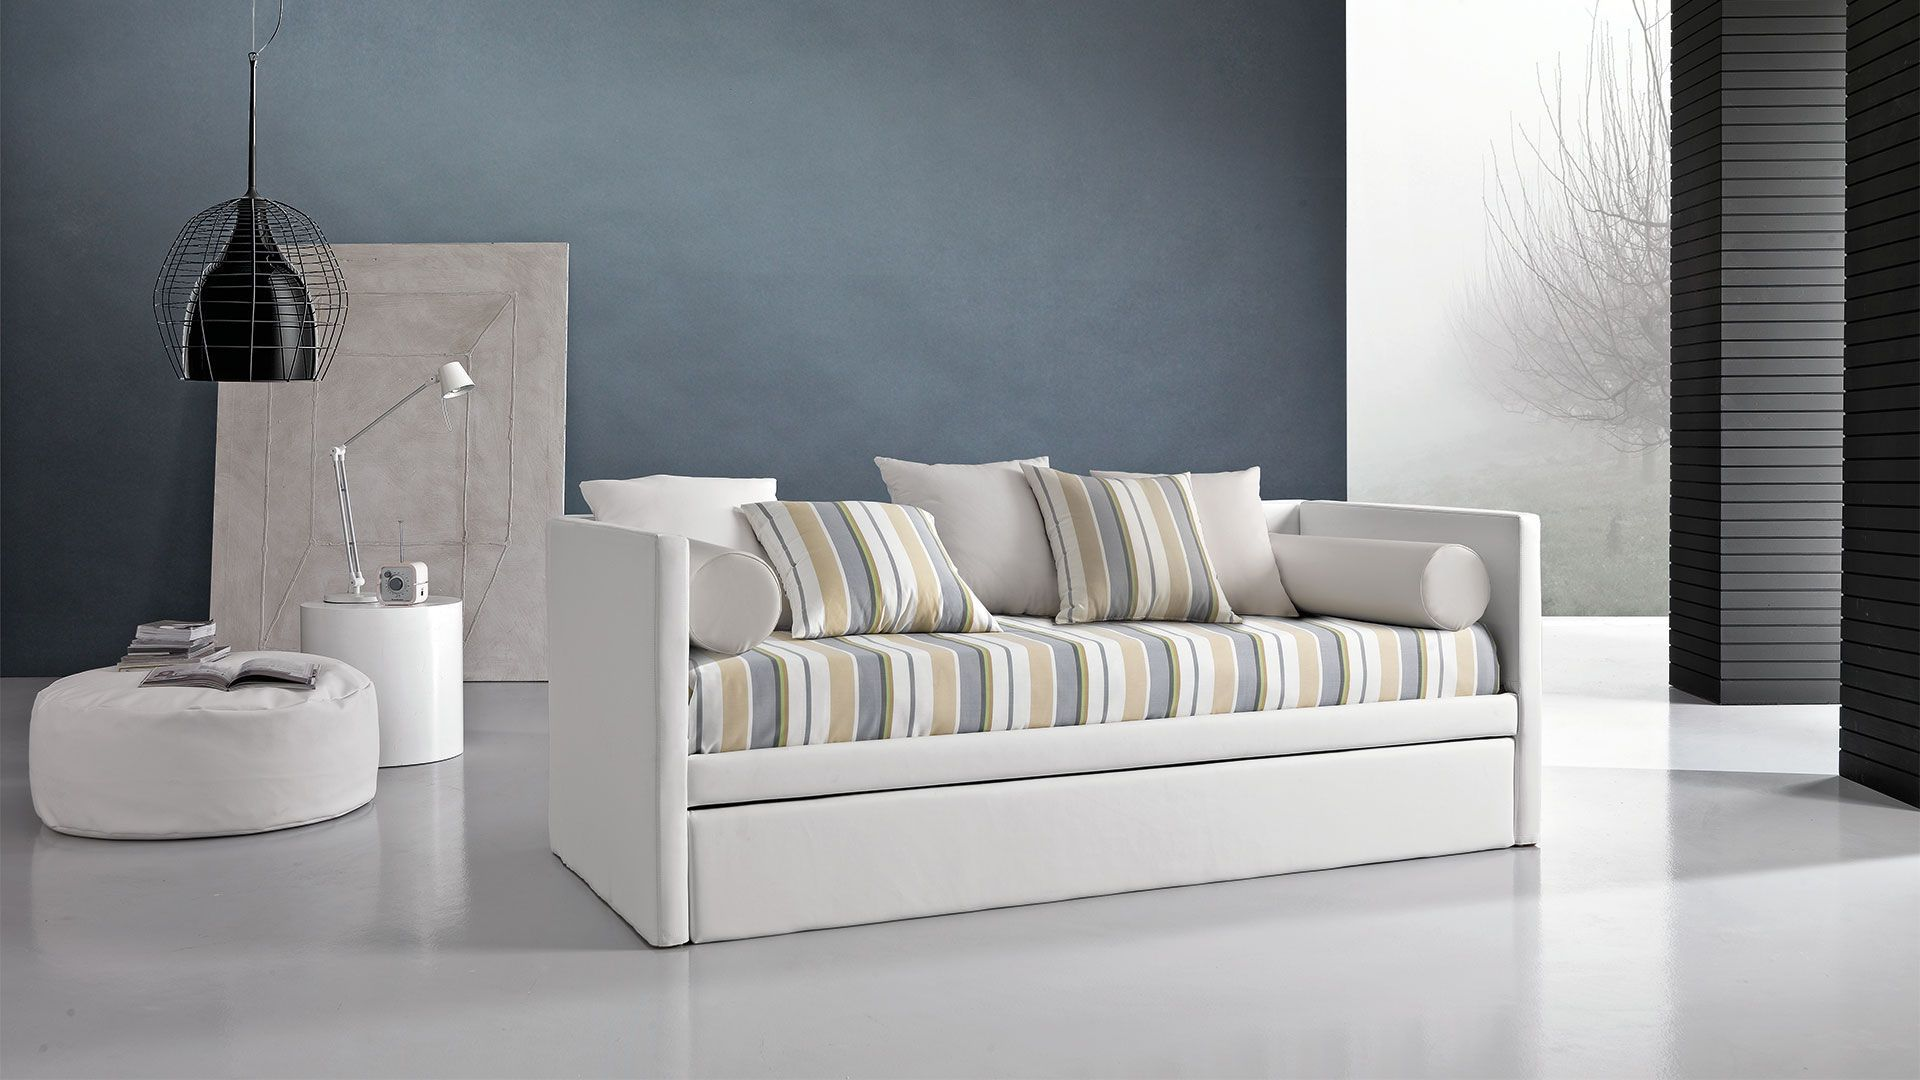 Sofa Bed Contemporary Leather Fabric Move Giessegi  # Giessegi Muebles Infantil